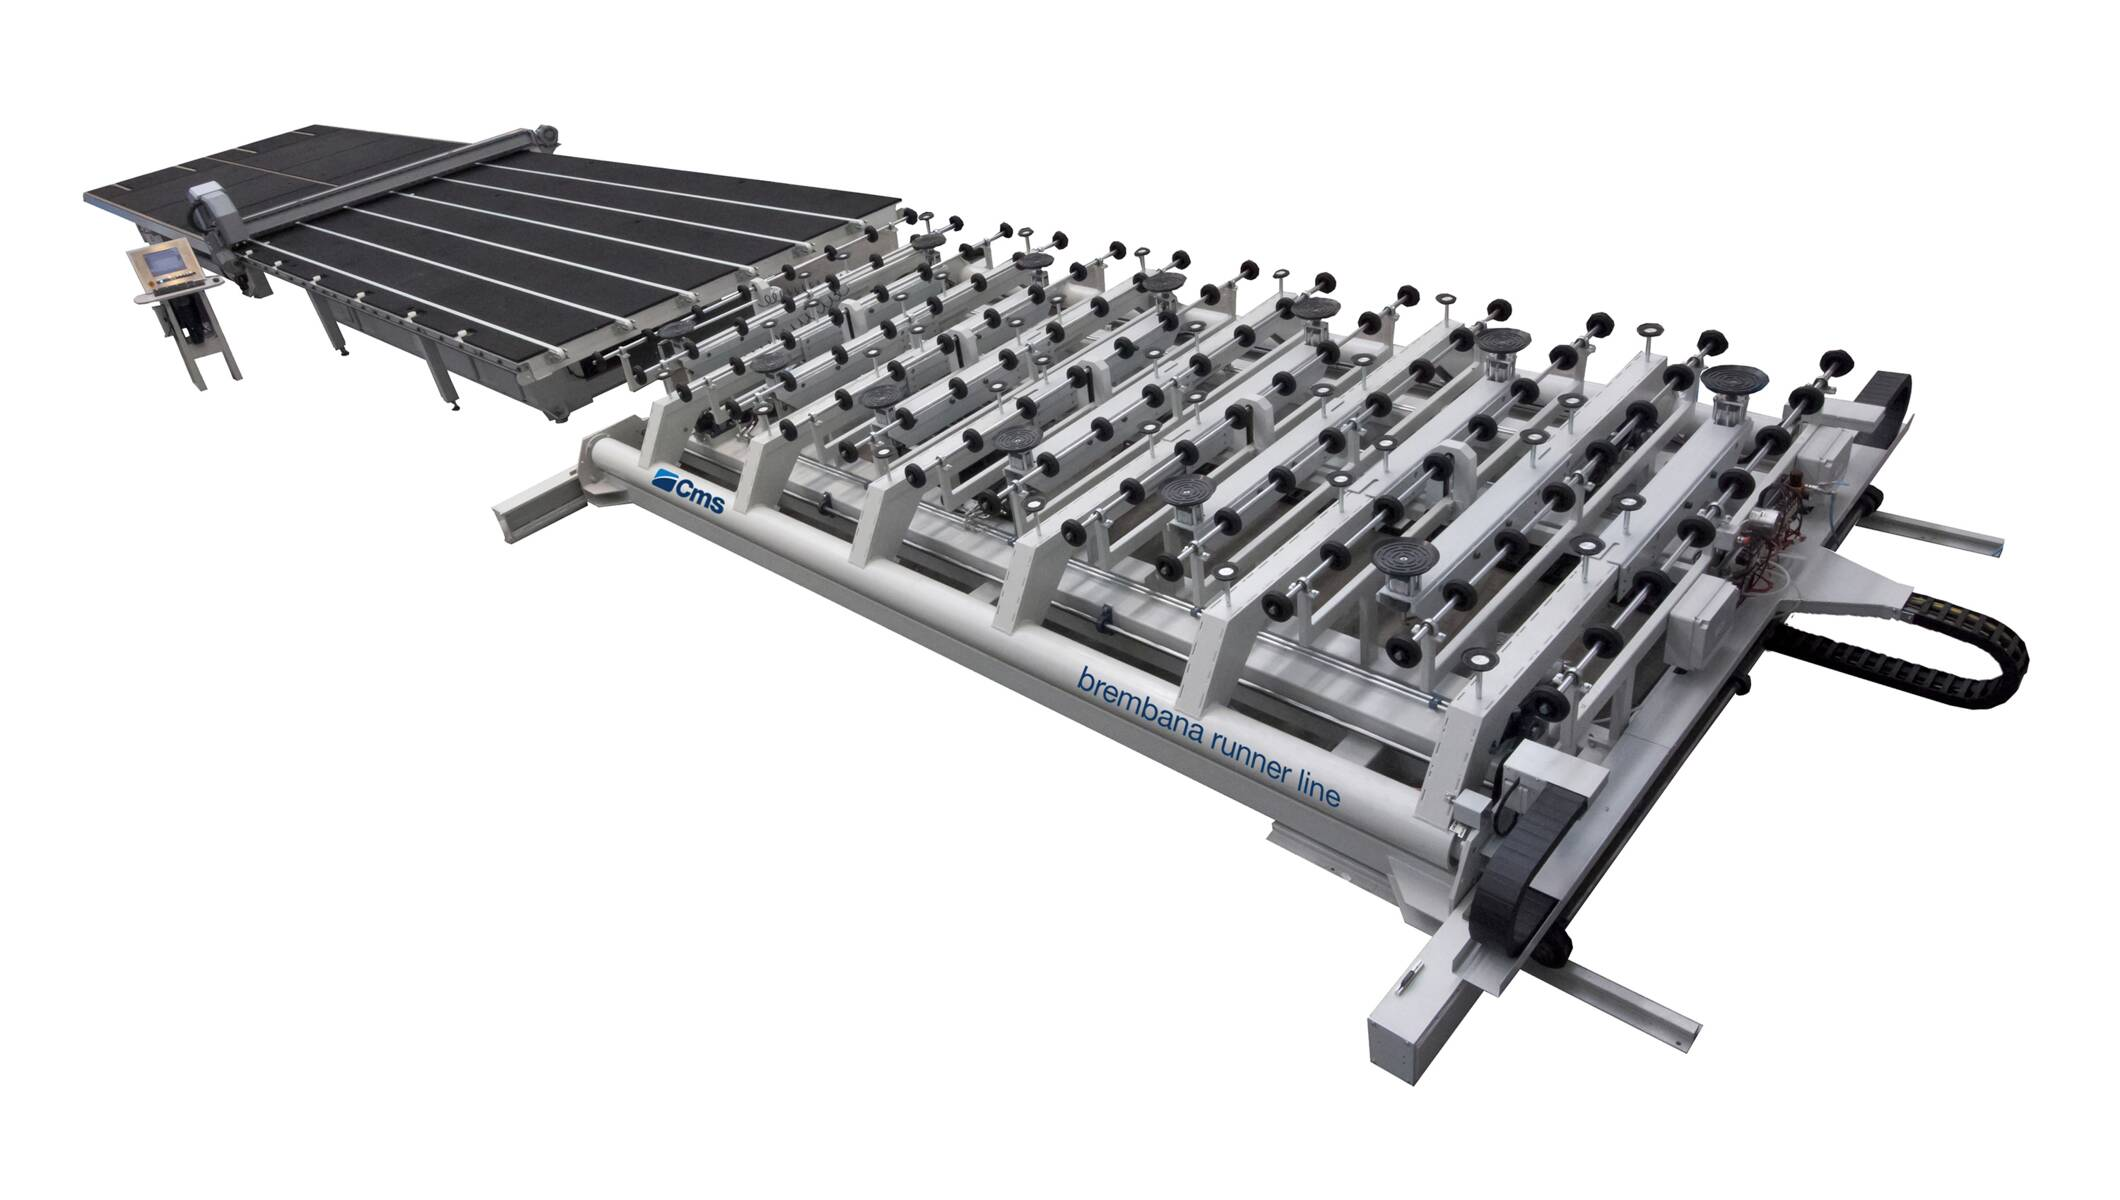 Glass processing - Cutting tables and cutting lines - brembana runner line